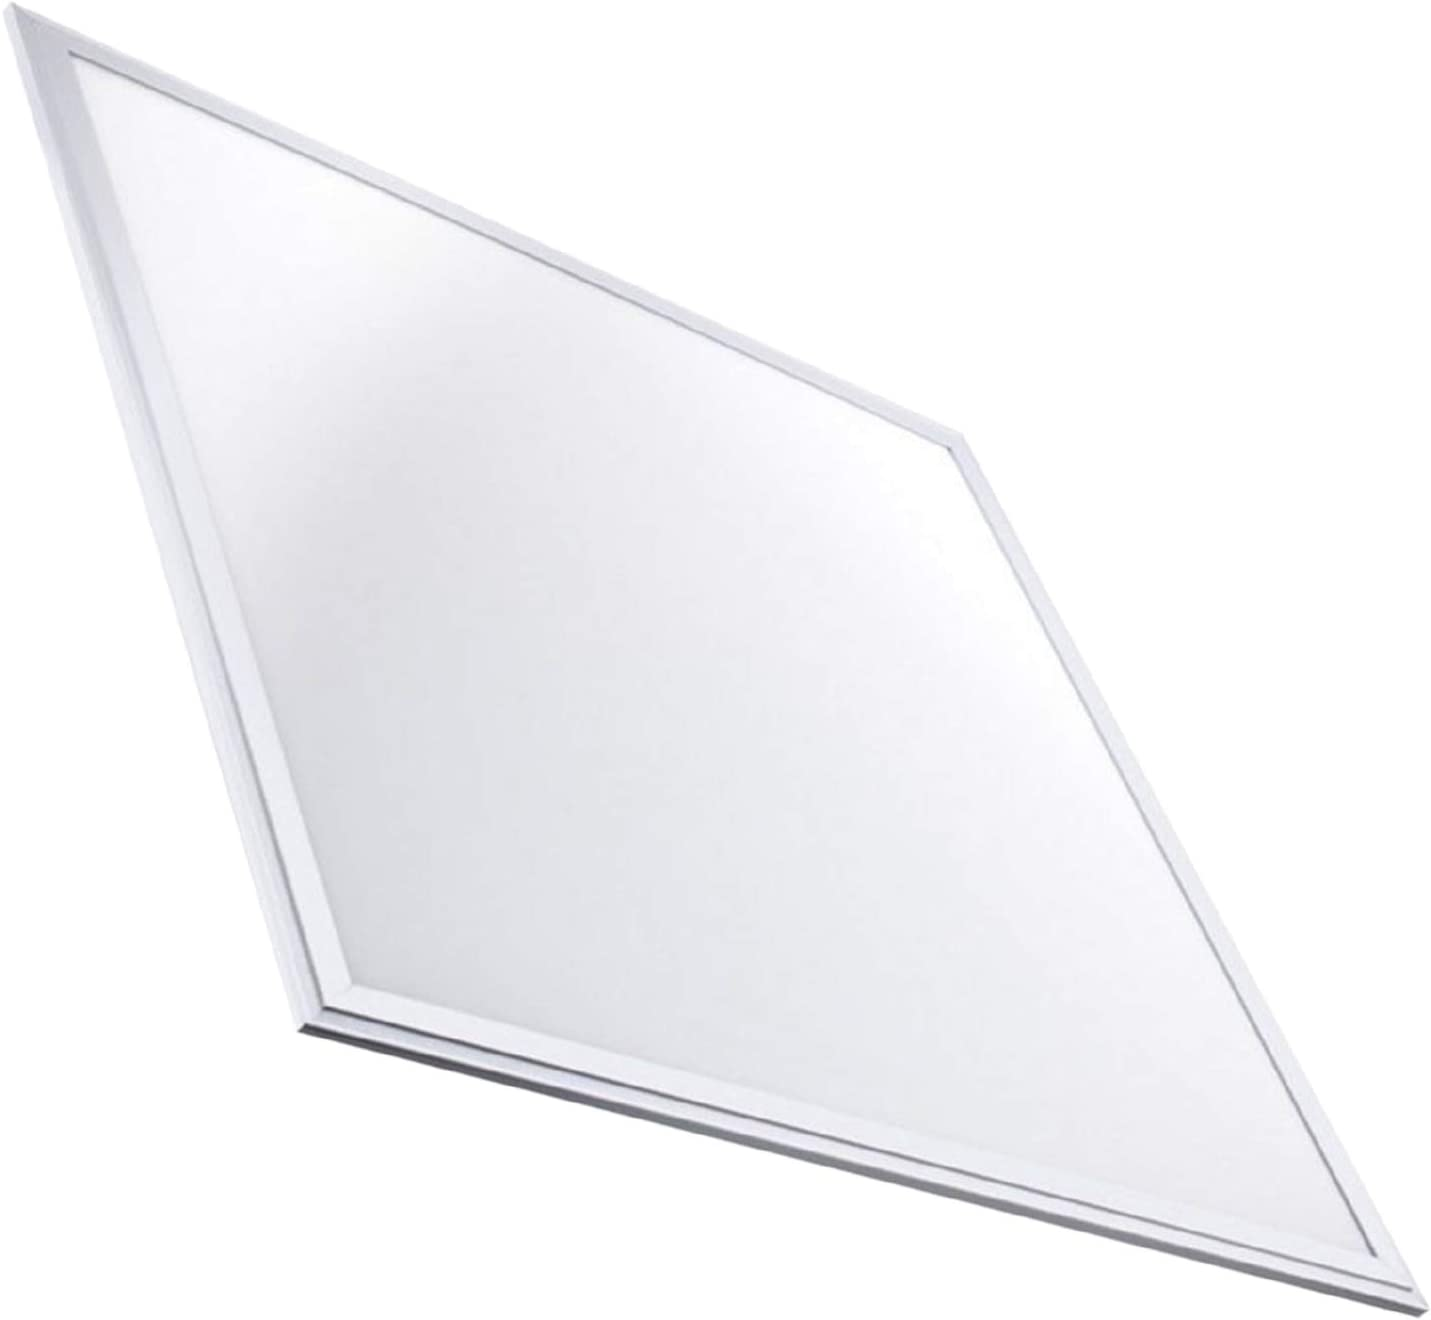 Pack 5x Panel Led slim 60x60 cm, 40 W. Color Blanco Neutro (4500K). 3600 Lumenes. Driver incluido. A++